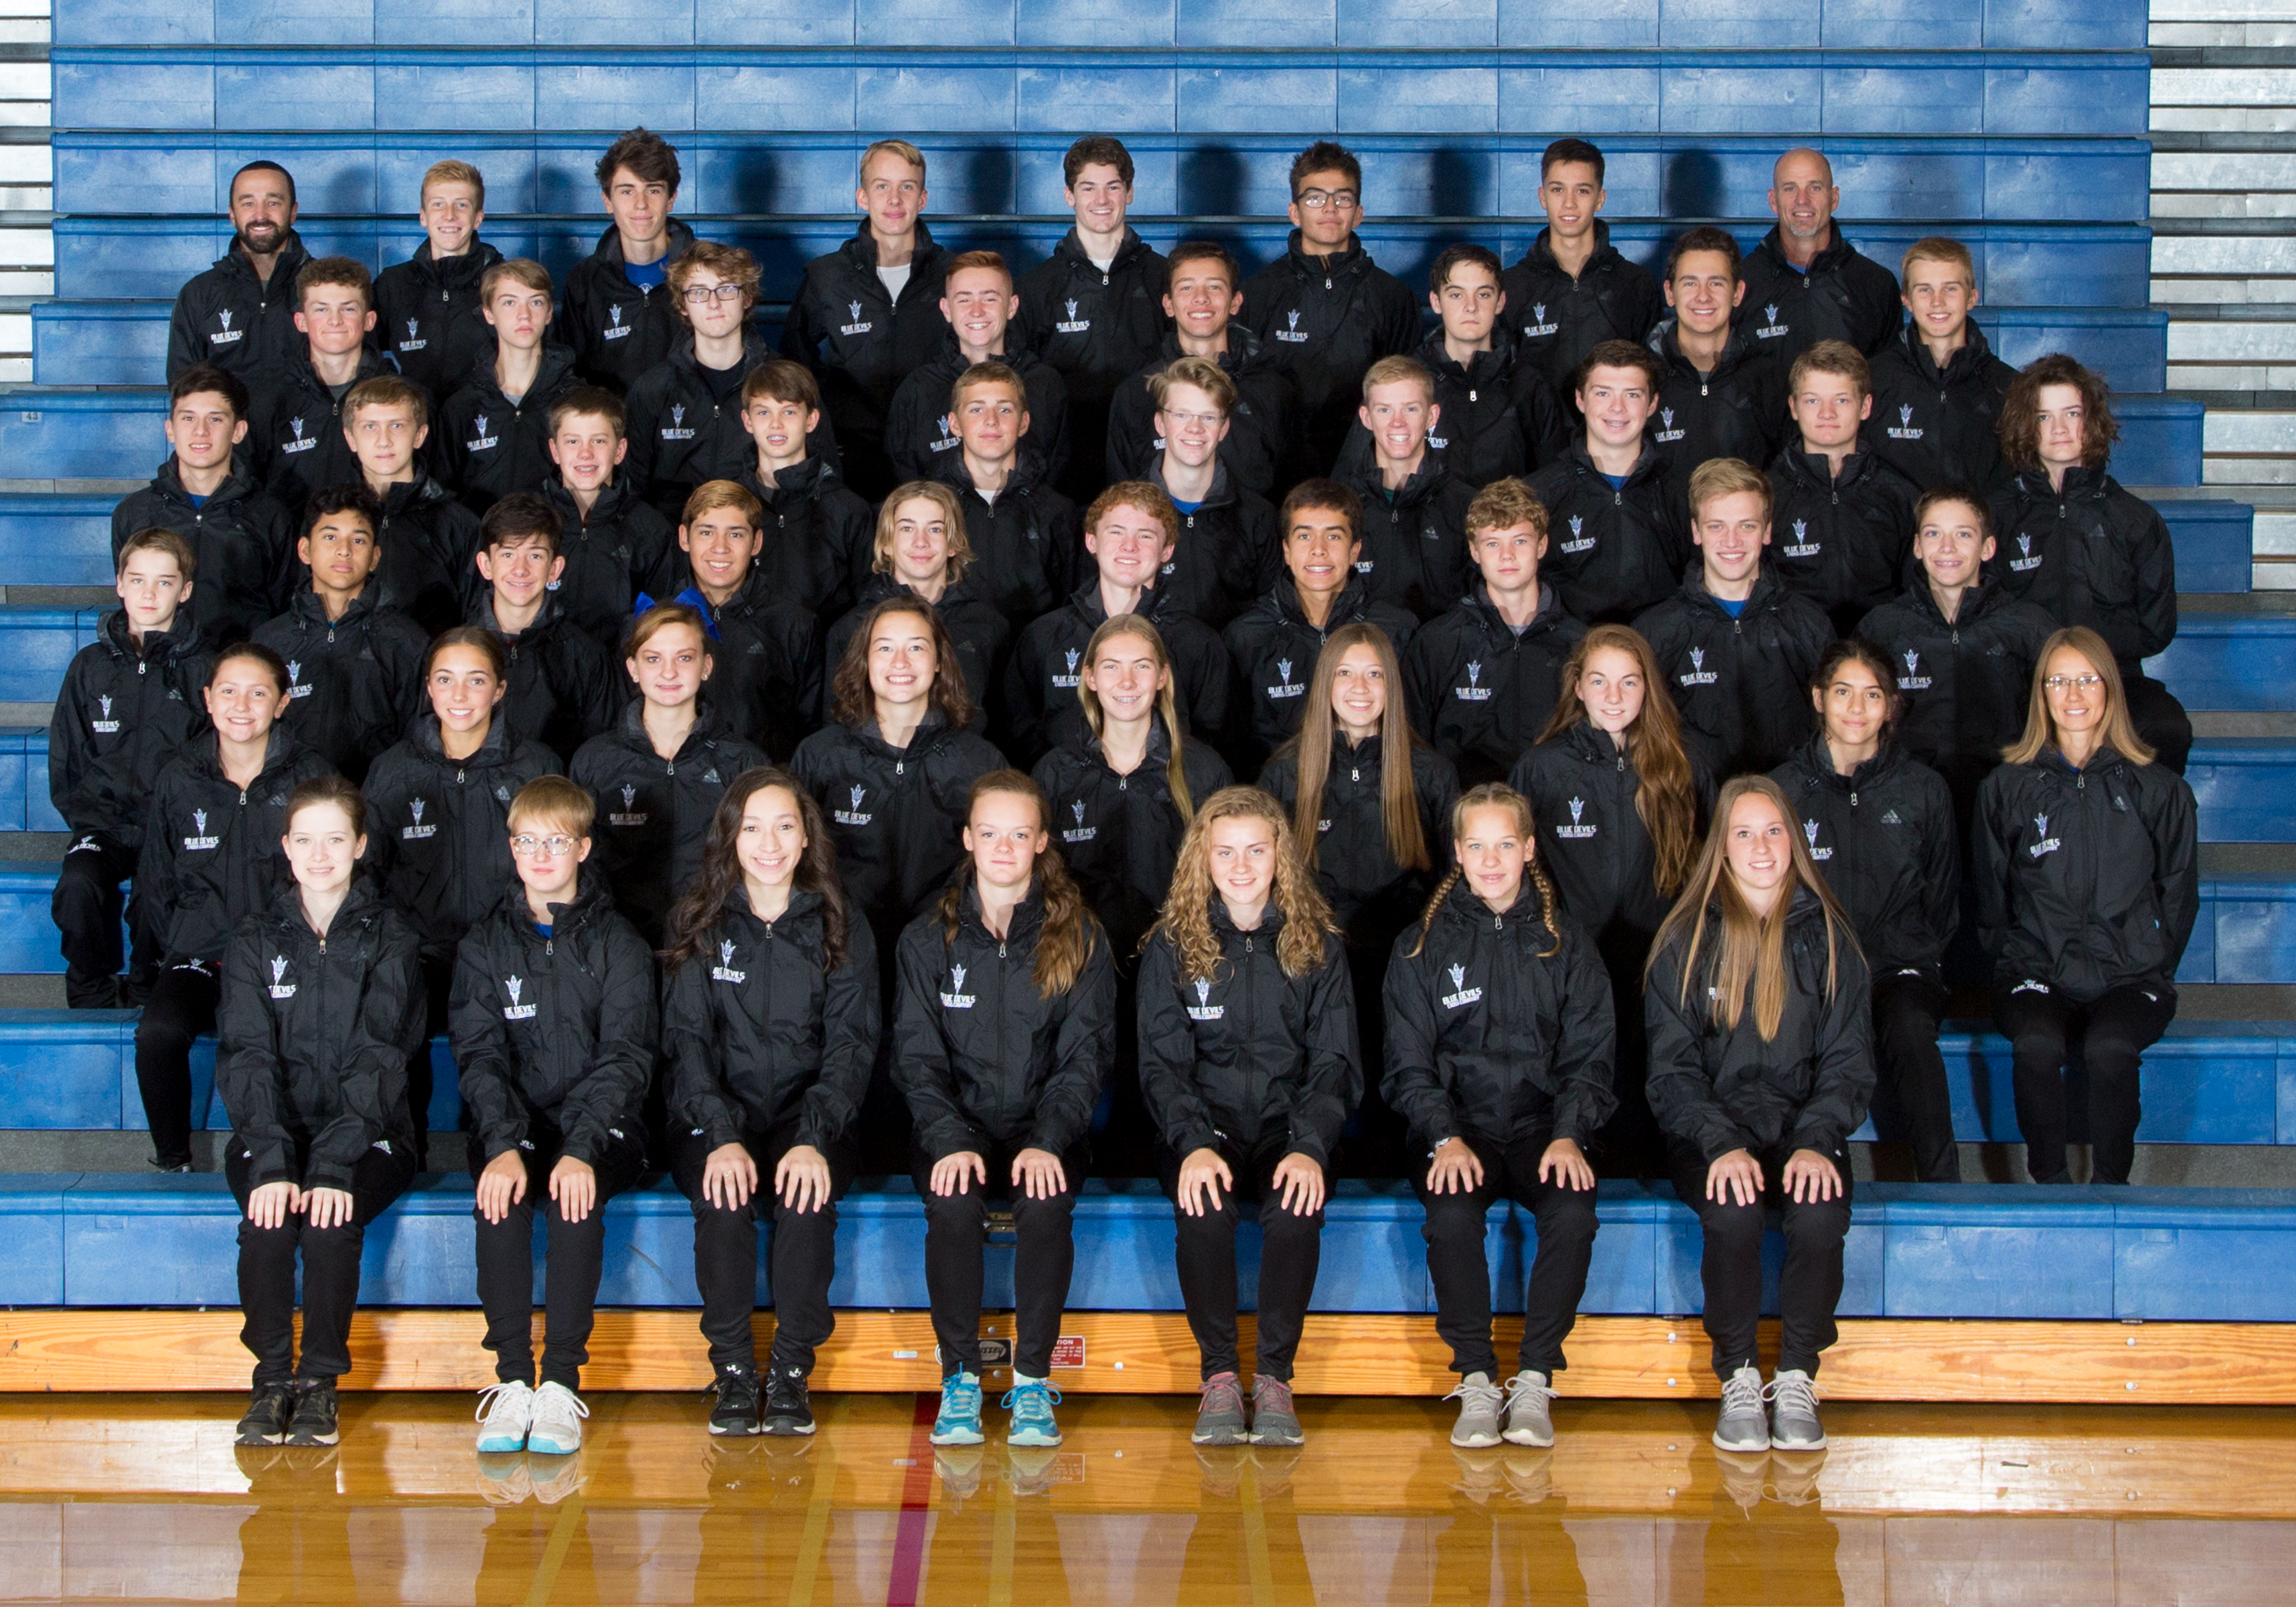 images/athletics/Cross_Country/2018_XC_Team.jpg